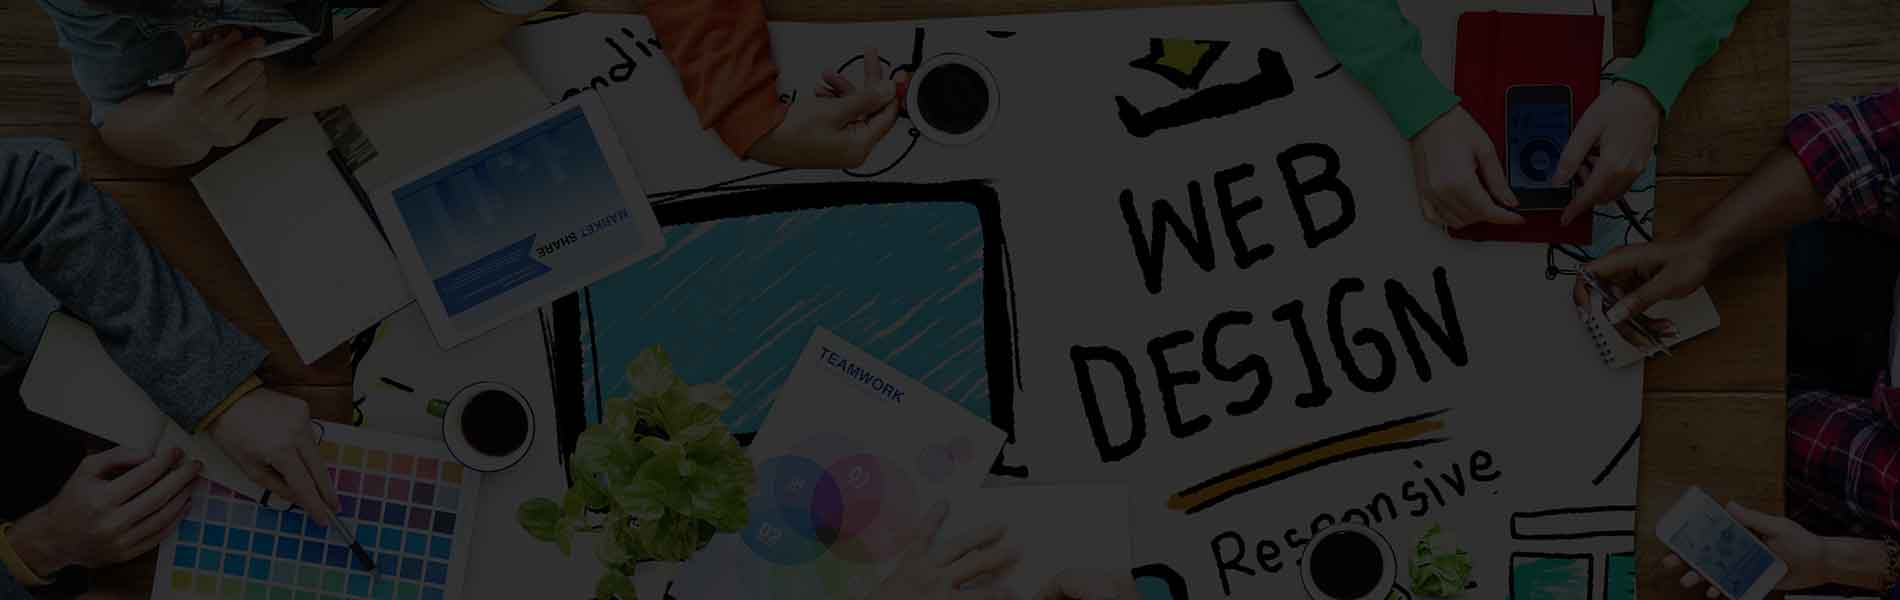 Web Solutions Adelaide